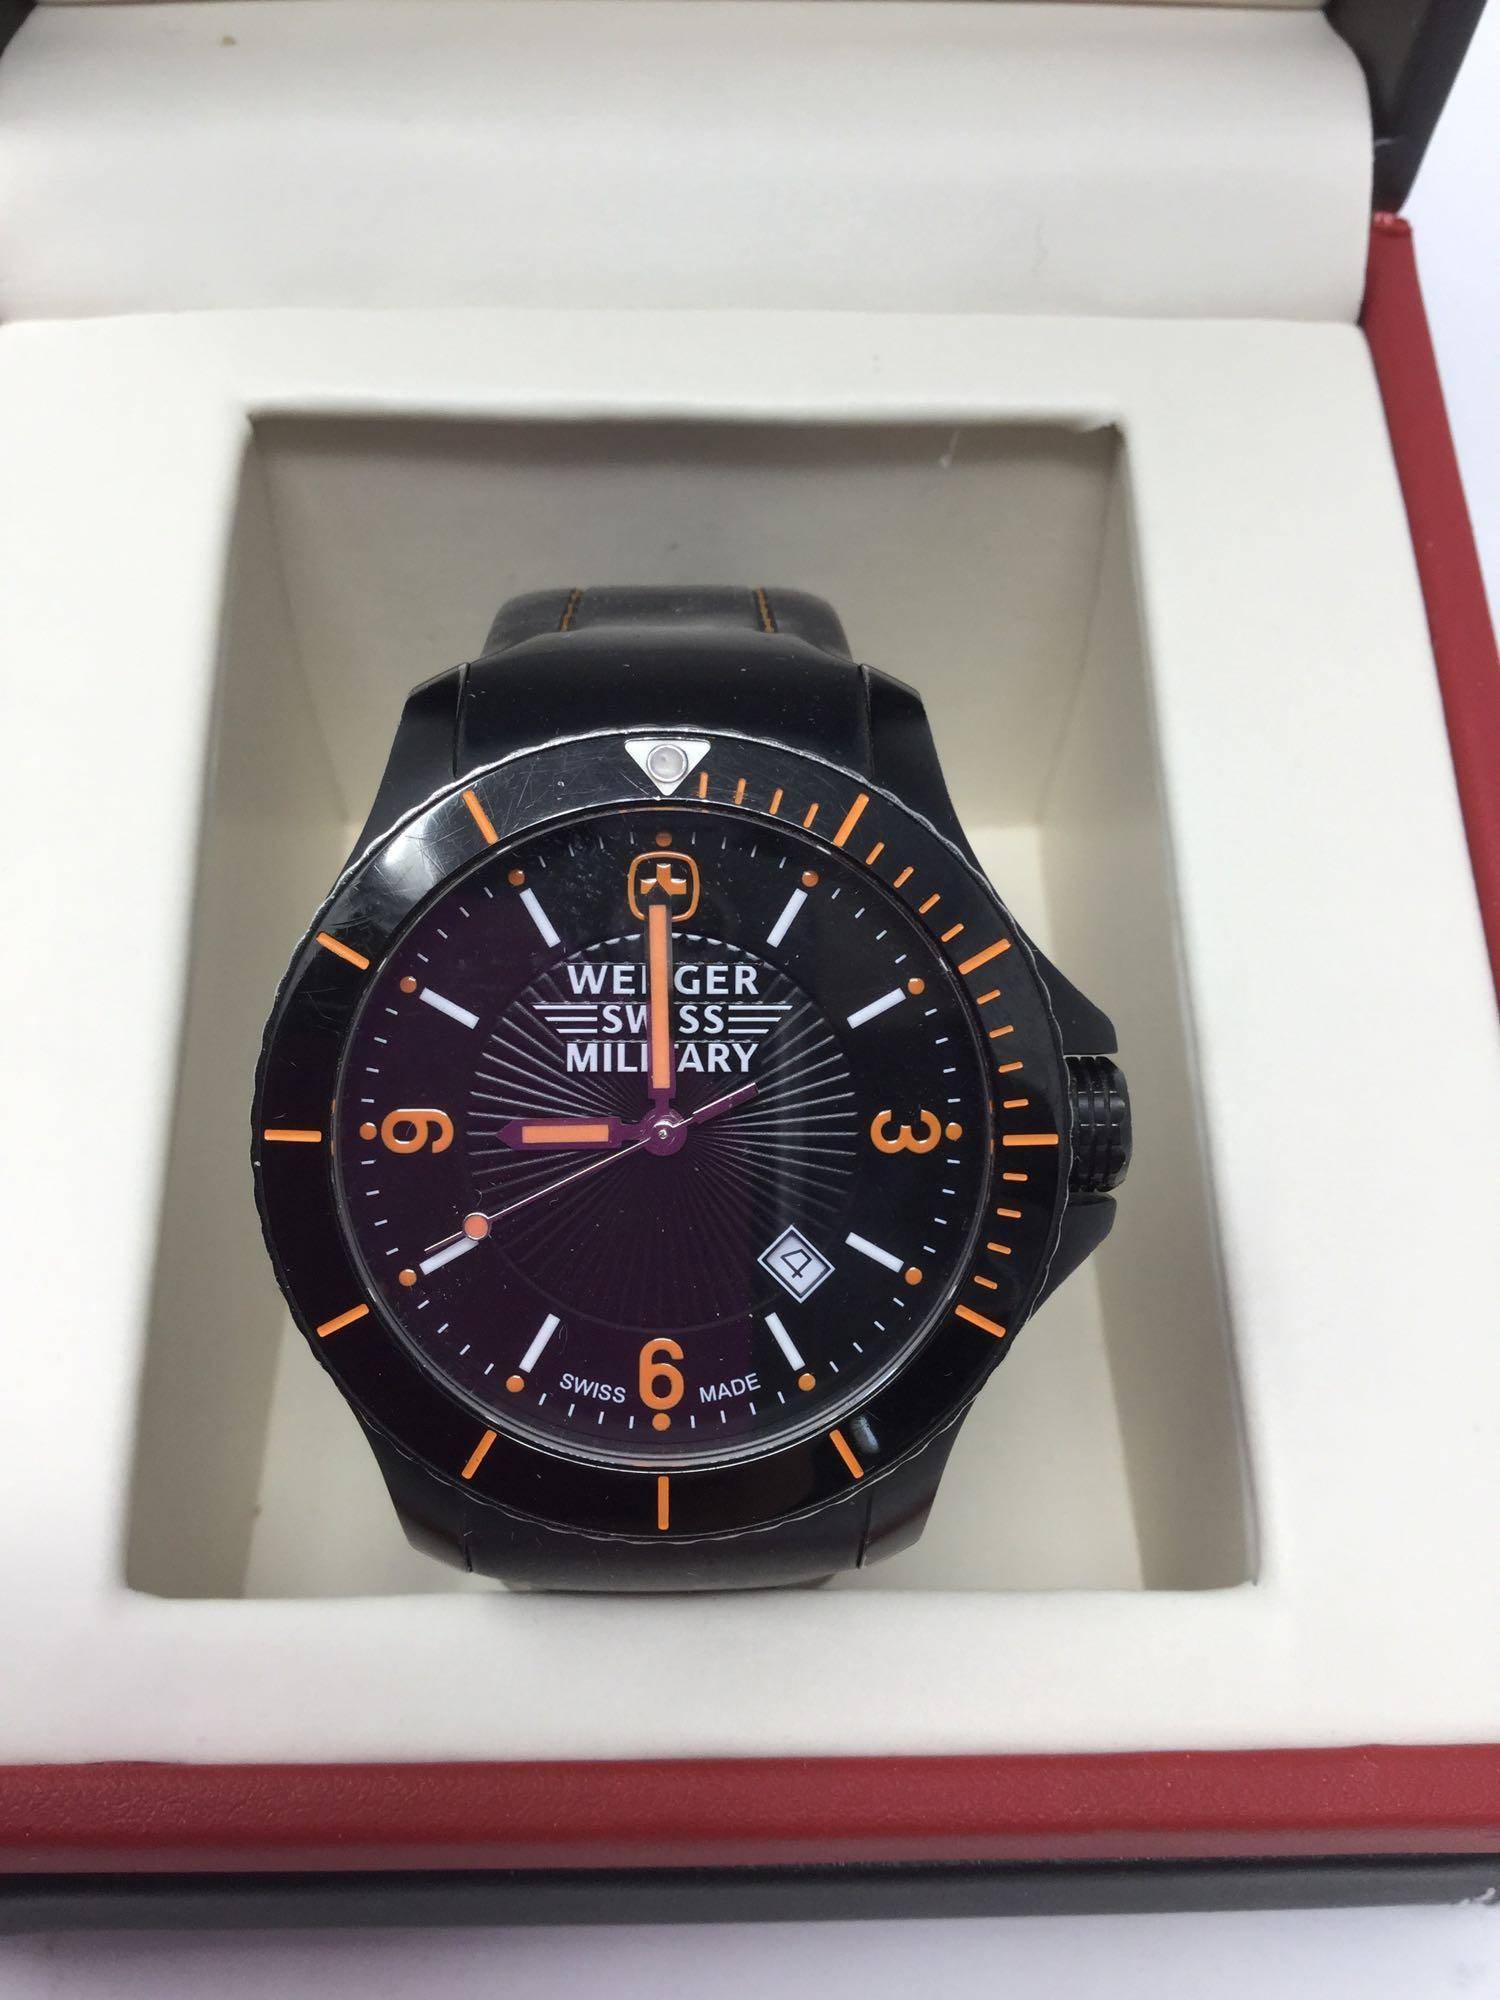 Lot 19 - Wenger Swiss Military Watch with Case - Black face with orange hands